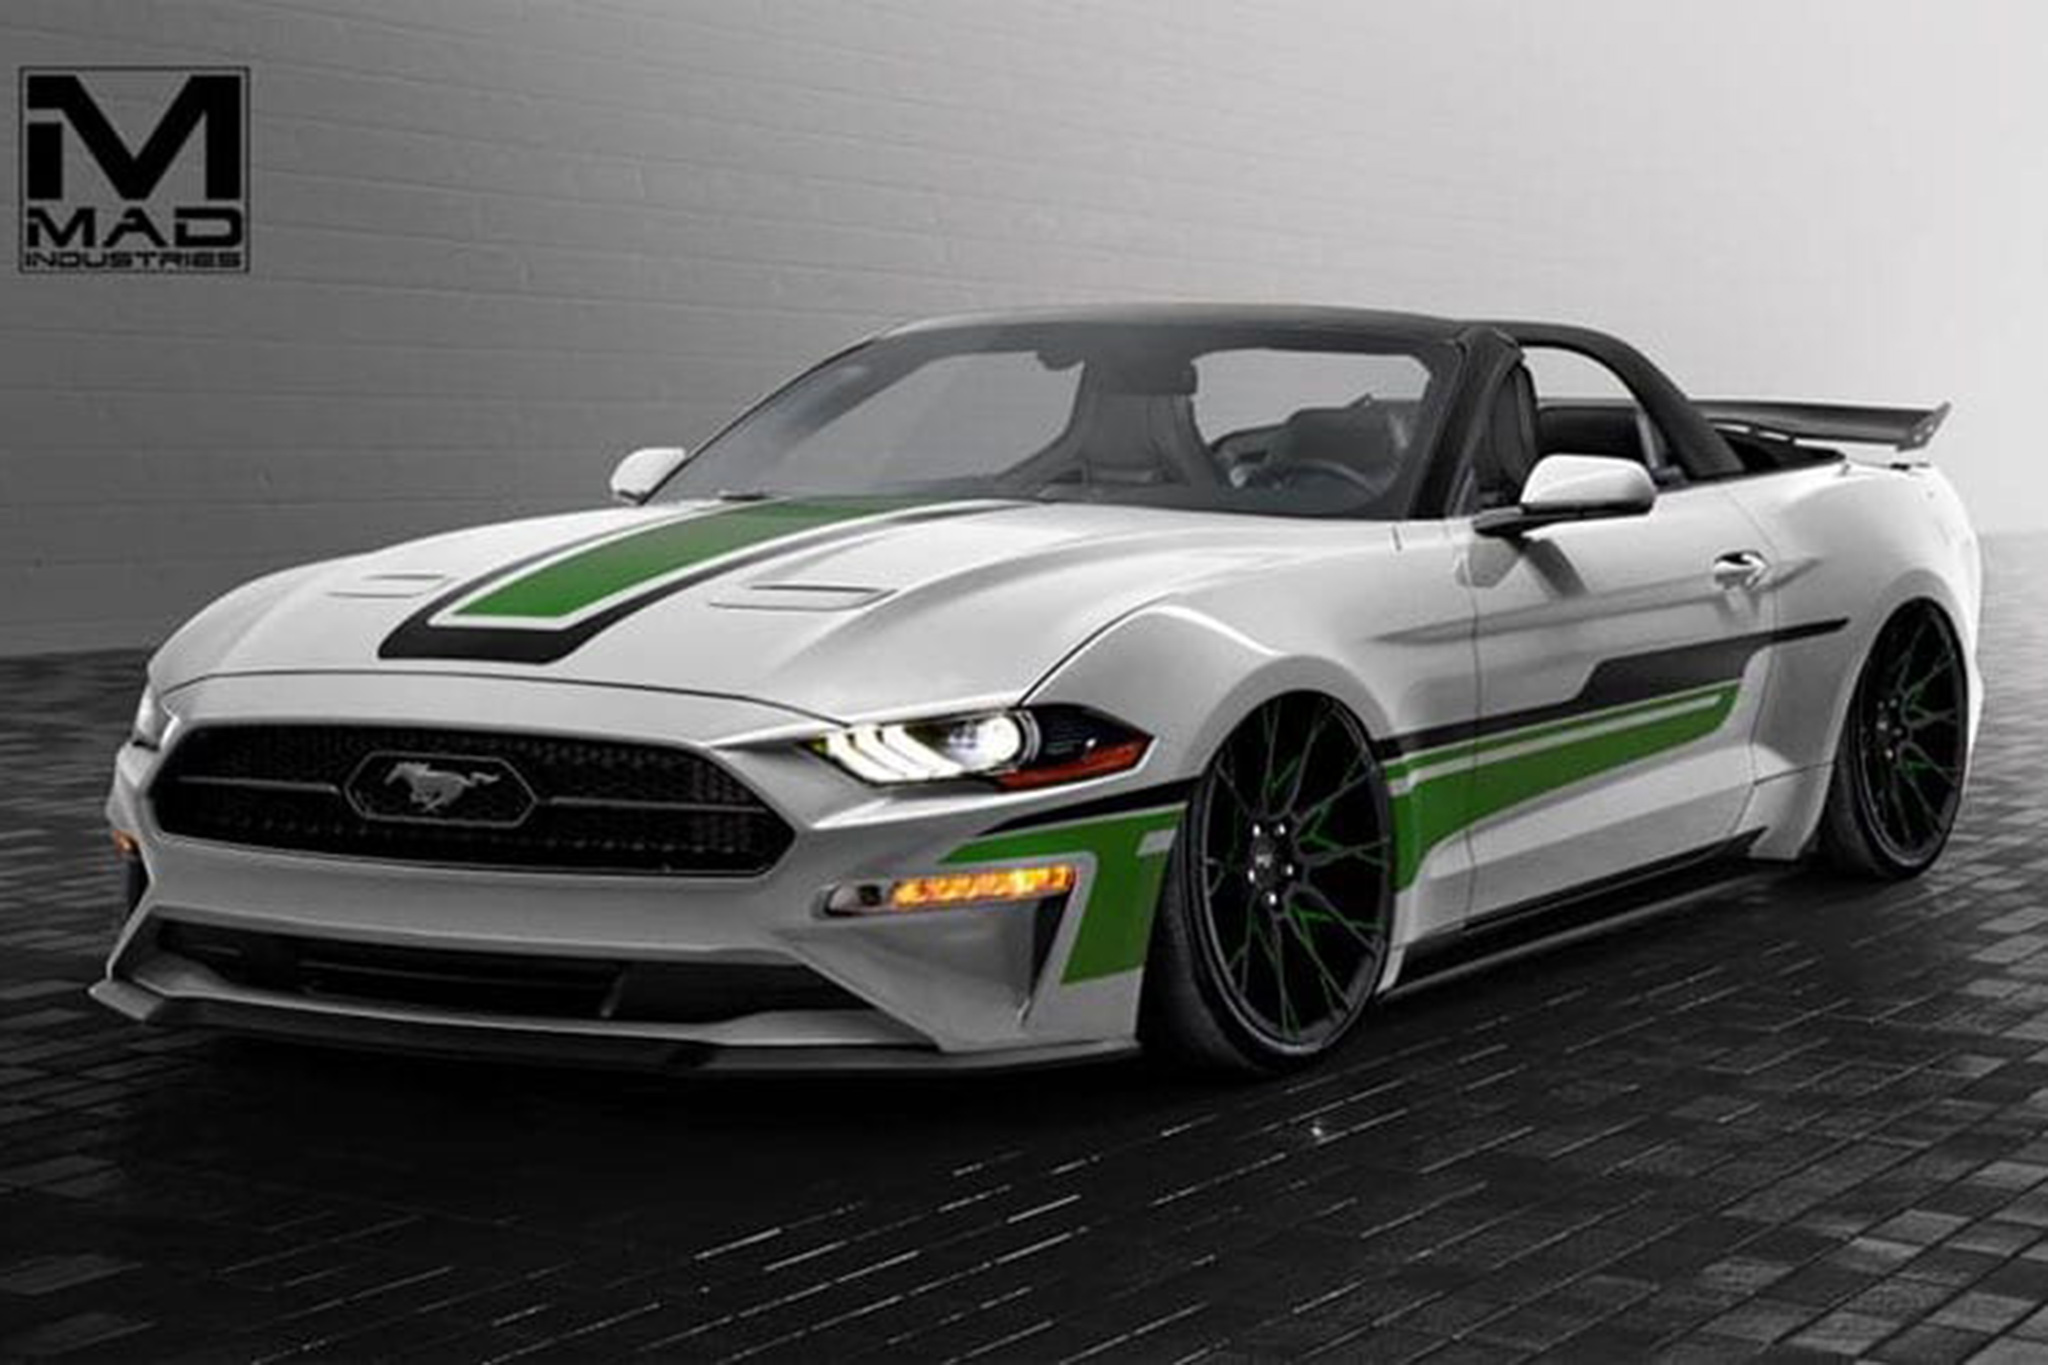 Heres another rad mustang from the mad mad minds at mad industries for drop top fans the white with green and black graphics convertible packs a re tuned